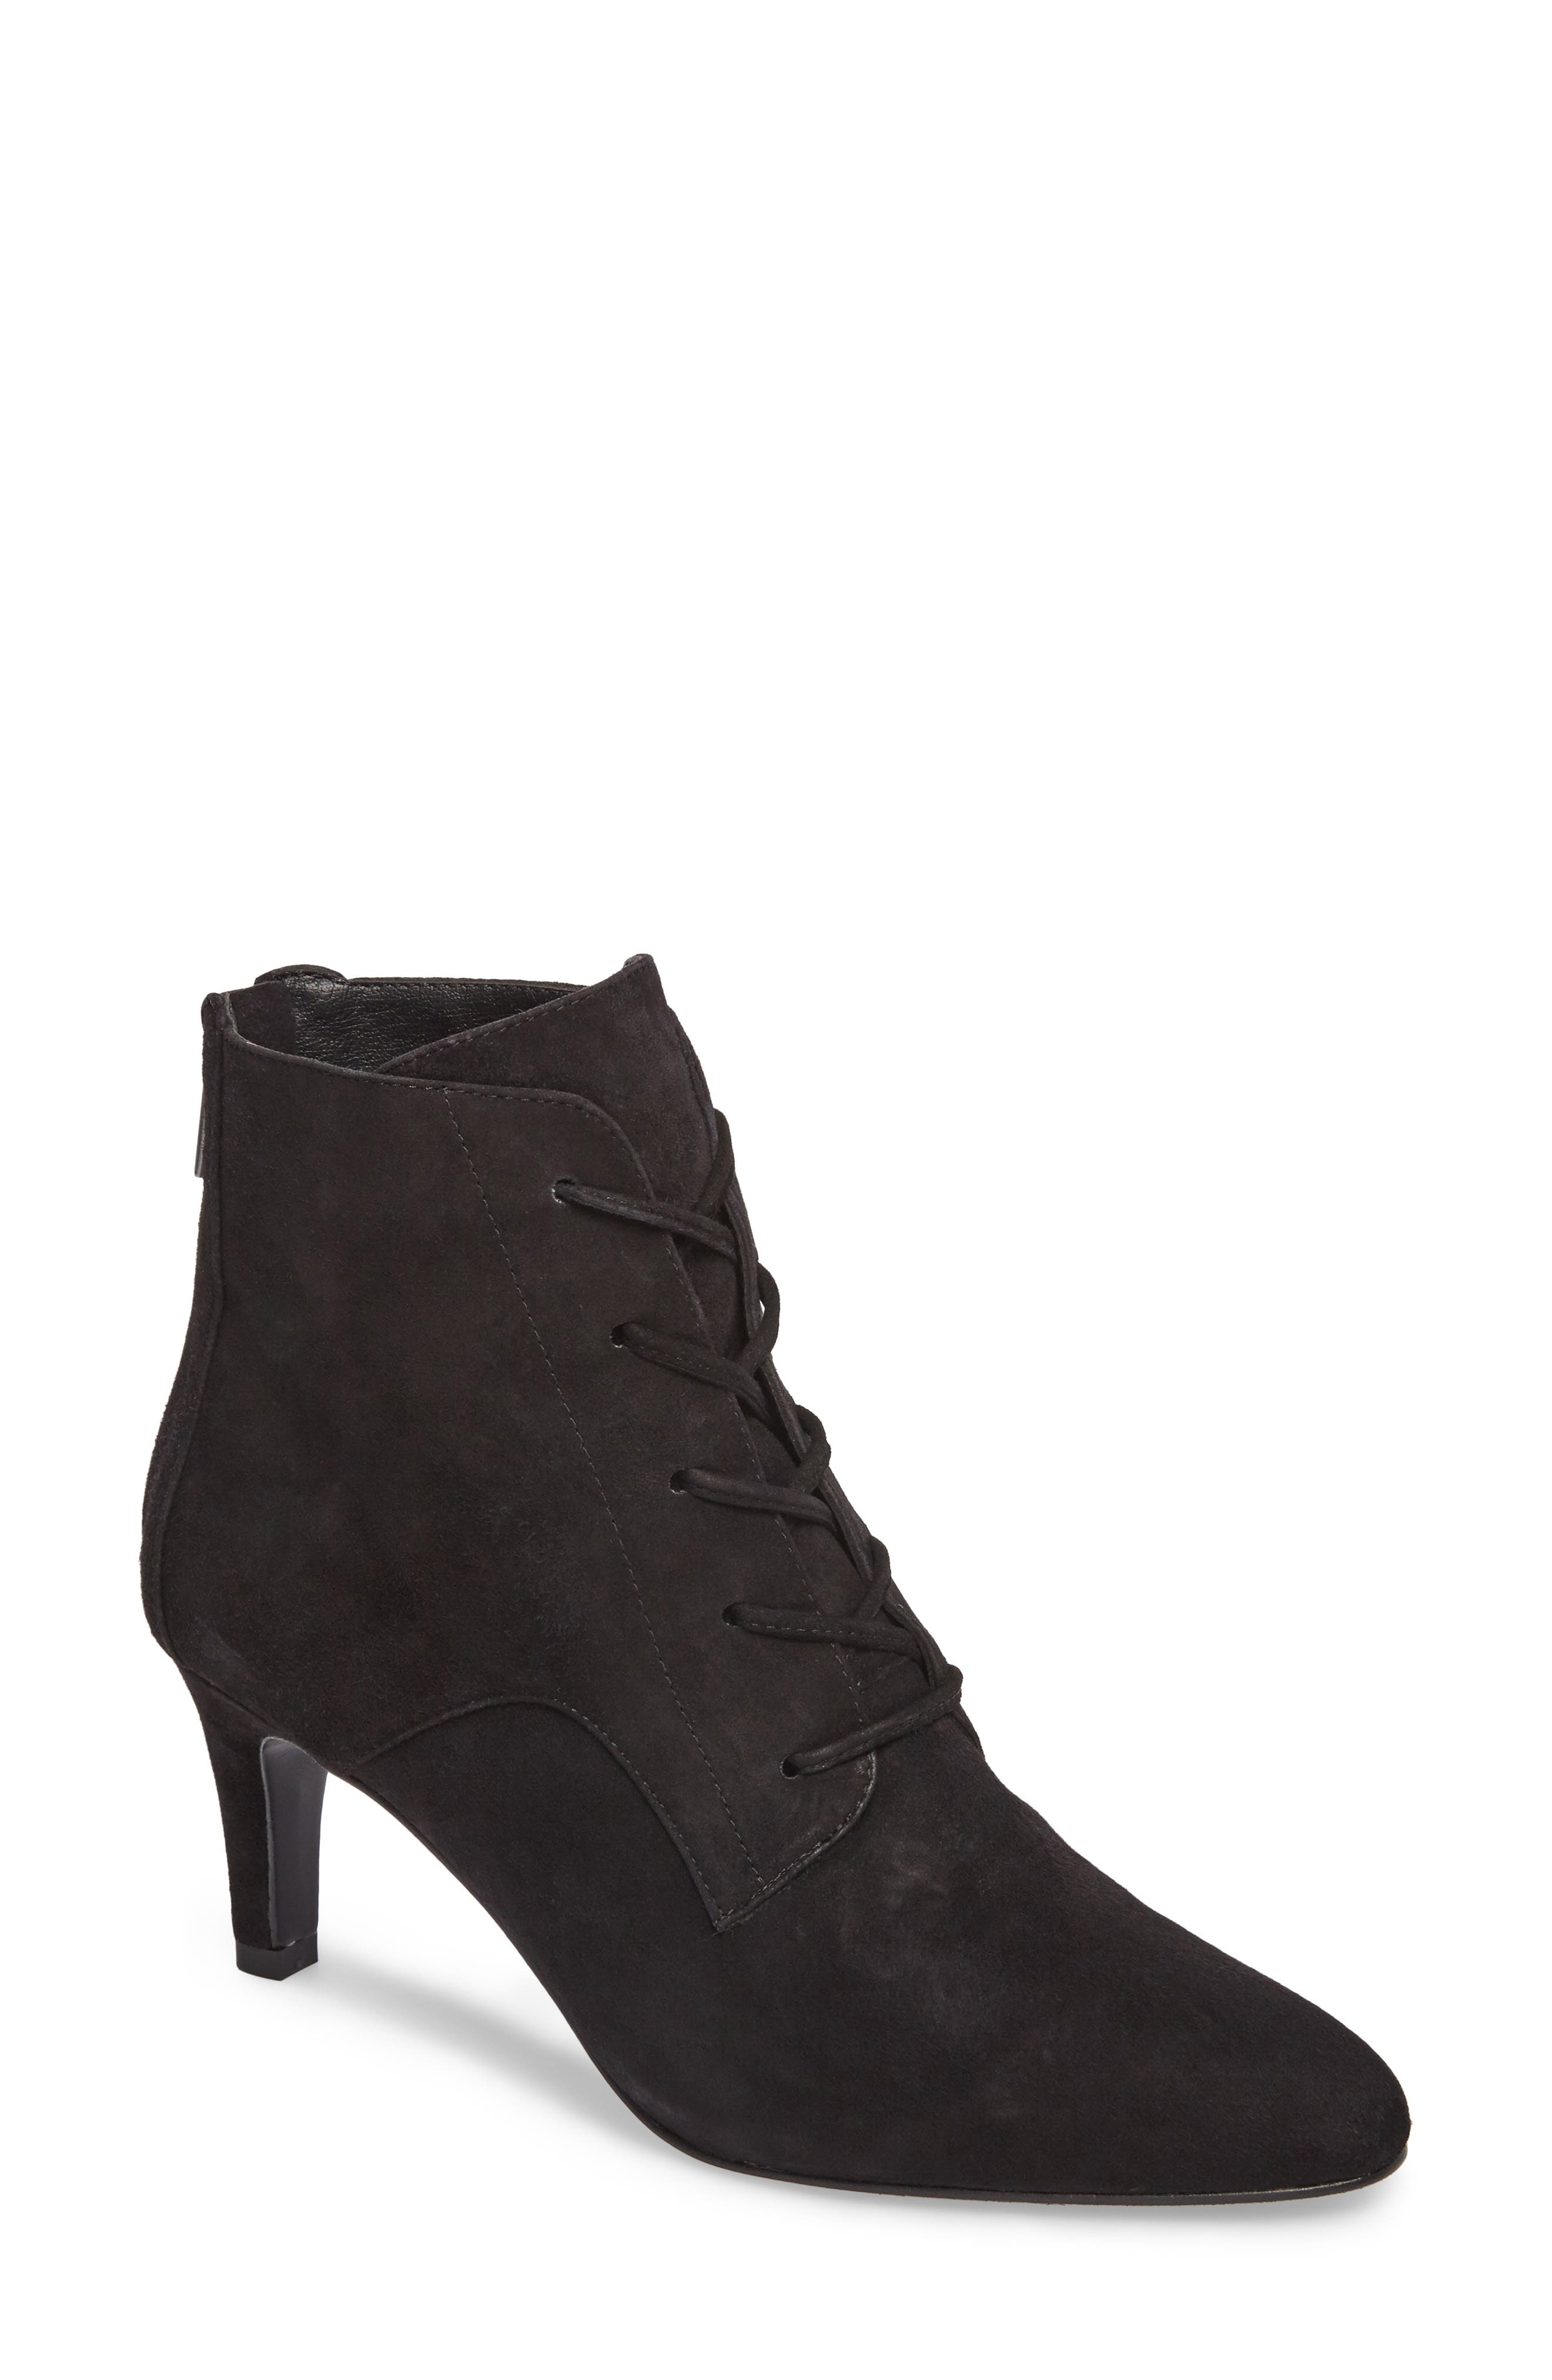 Yelen Bootie,                         Main,                         color, Black Leather